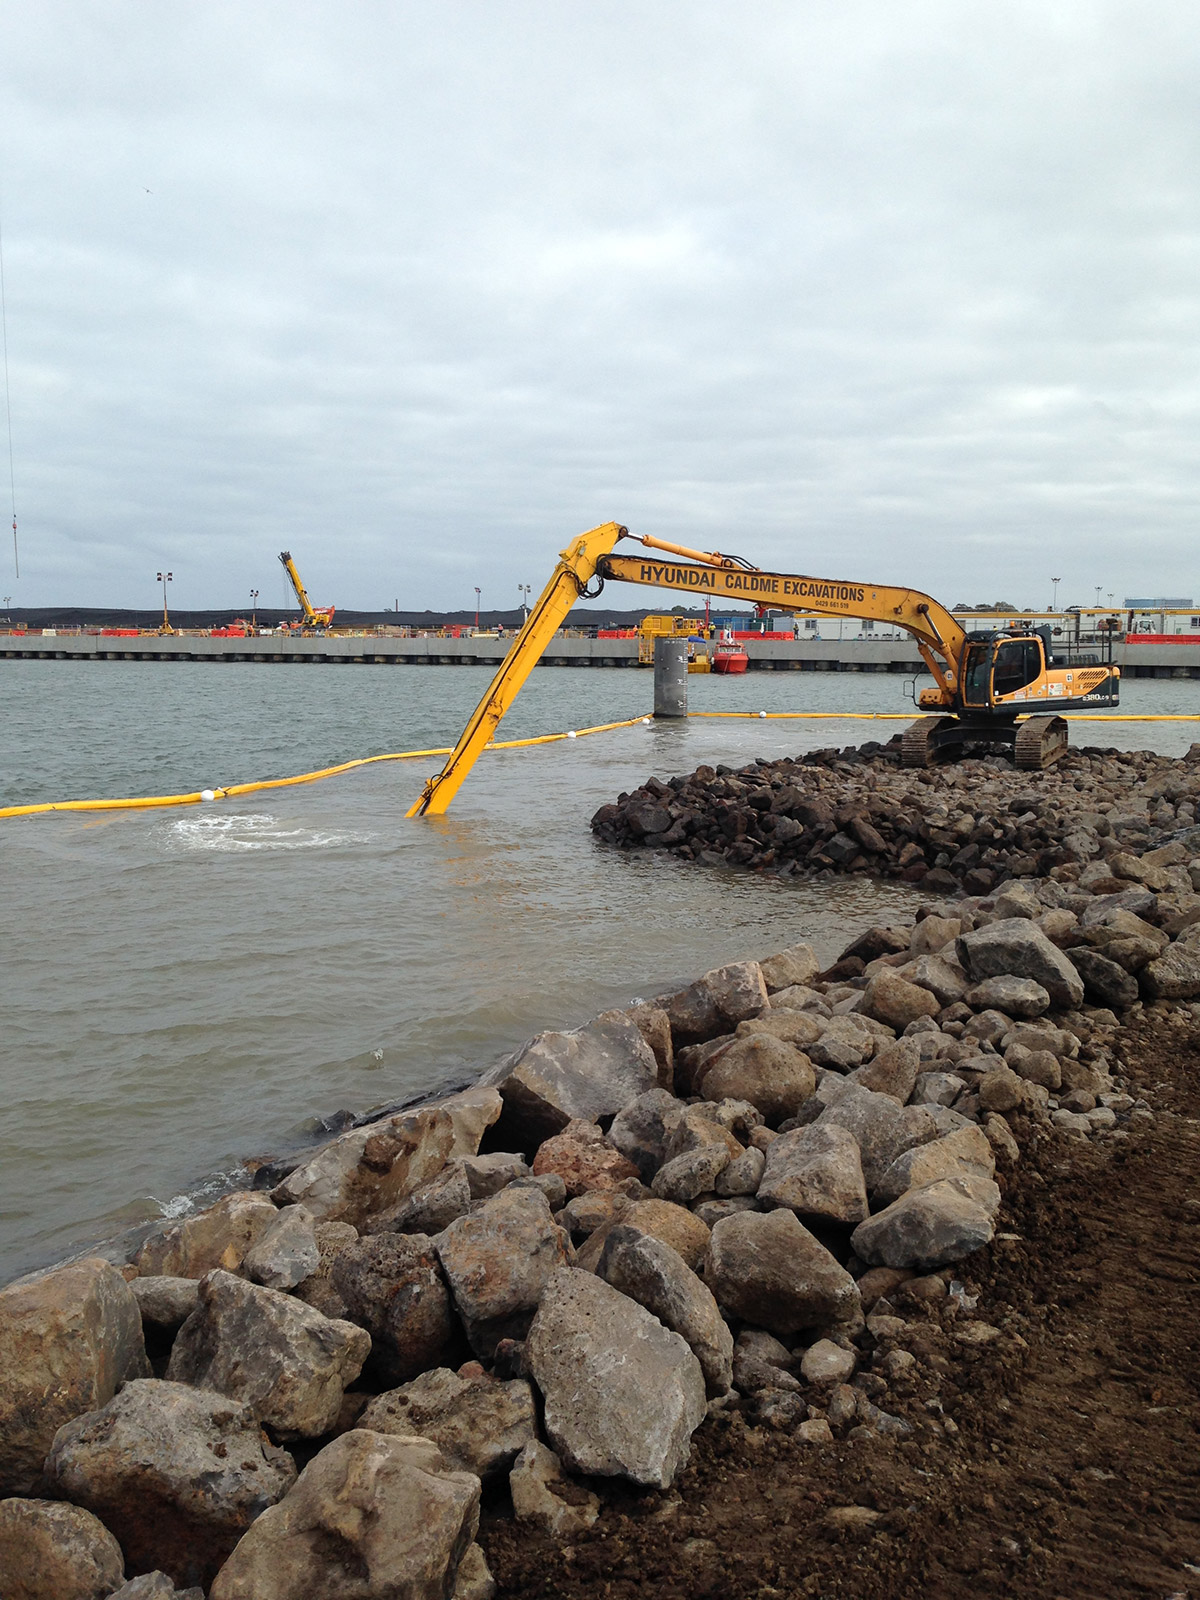 Caldme Excavations Long Reach Excavator marine construction